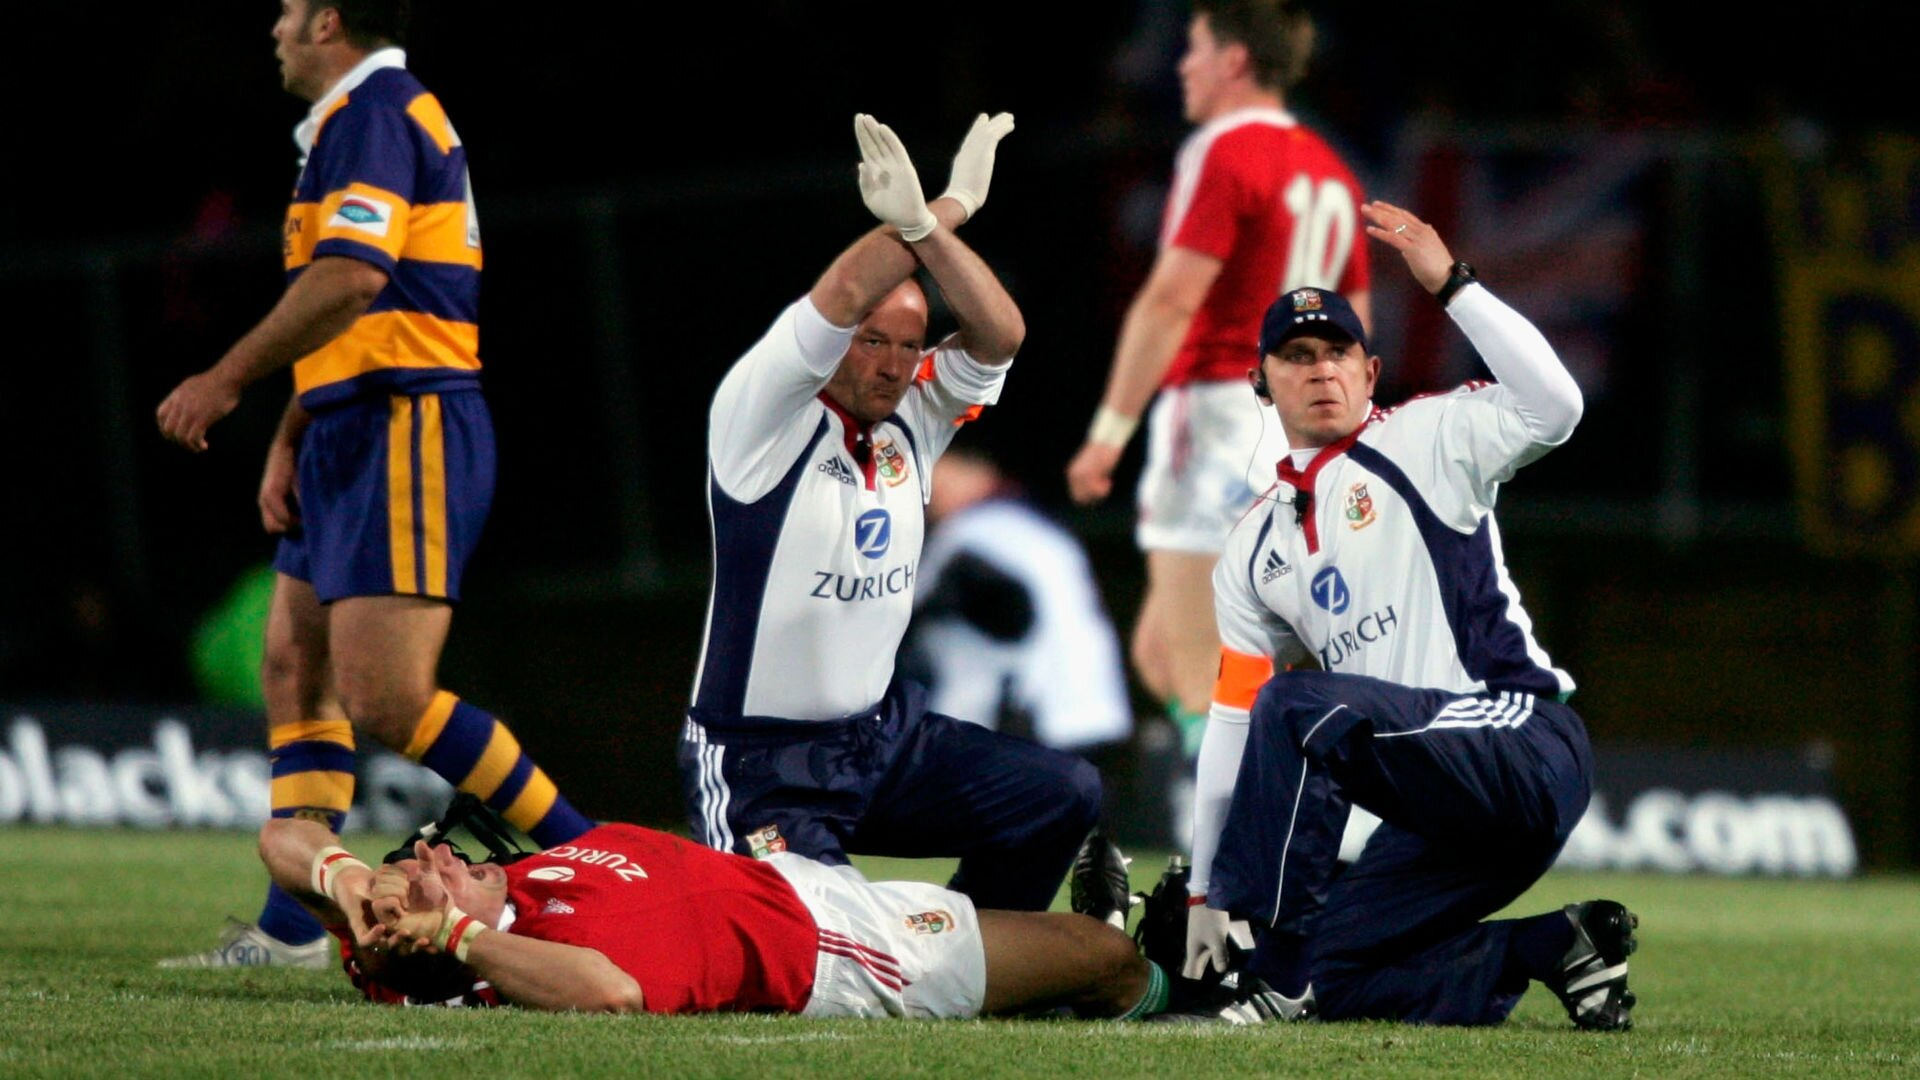 Playing behind closed doors won't be a panacea for rugby claims Scotland team doctor